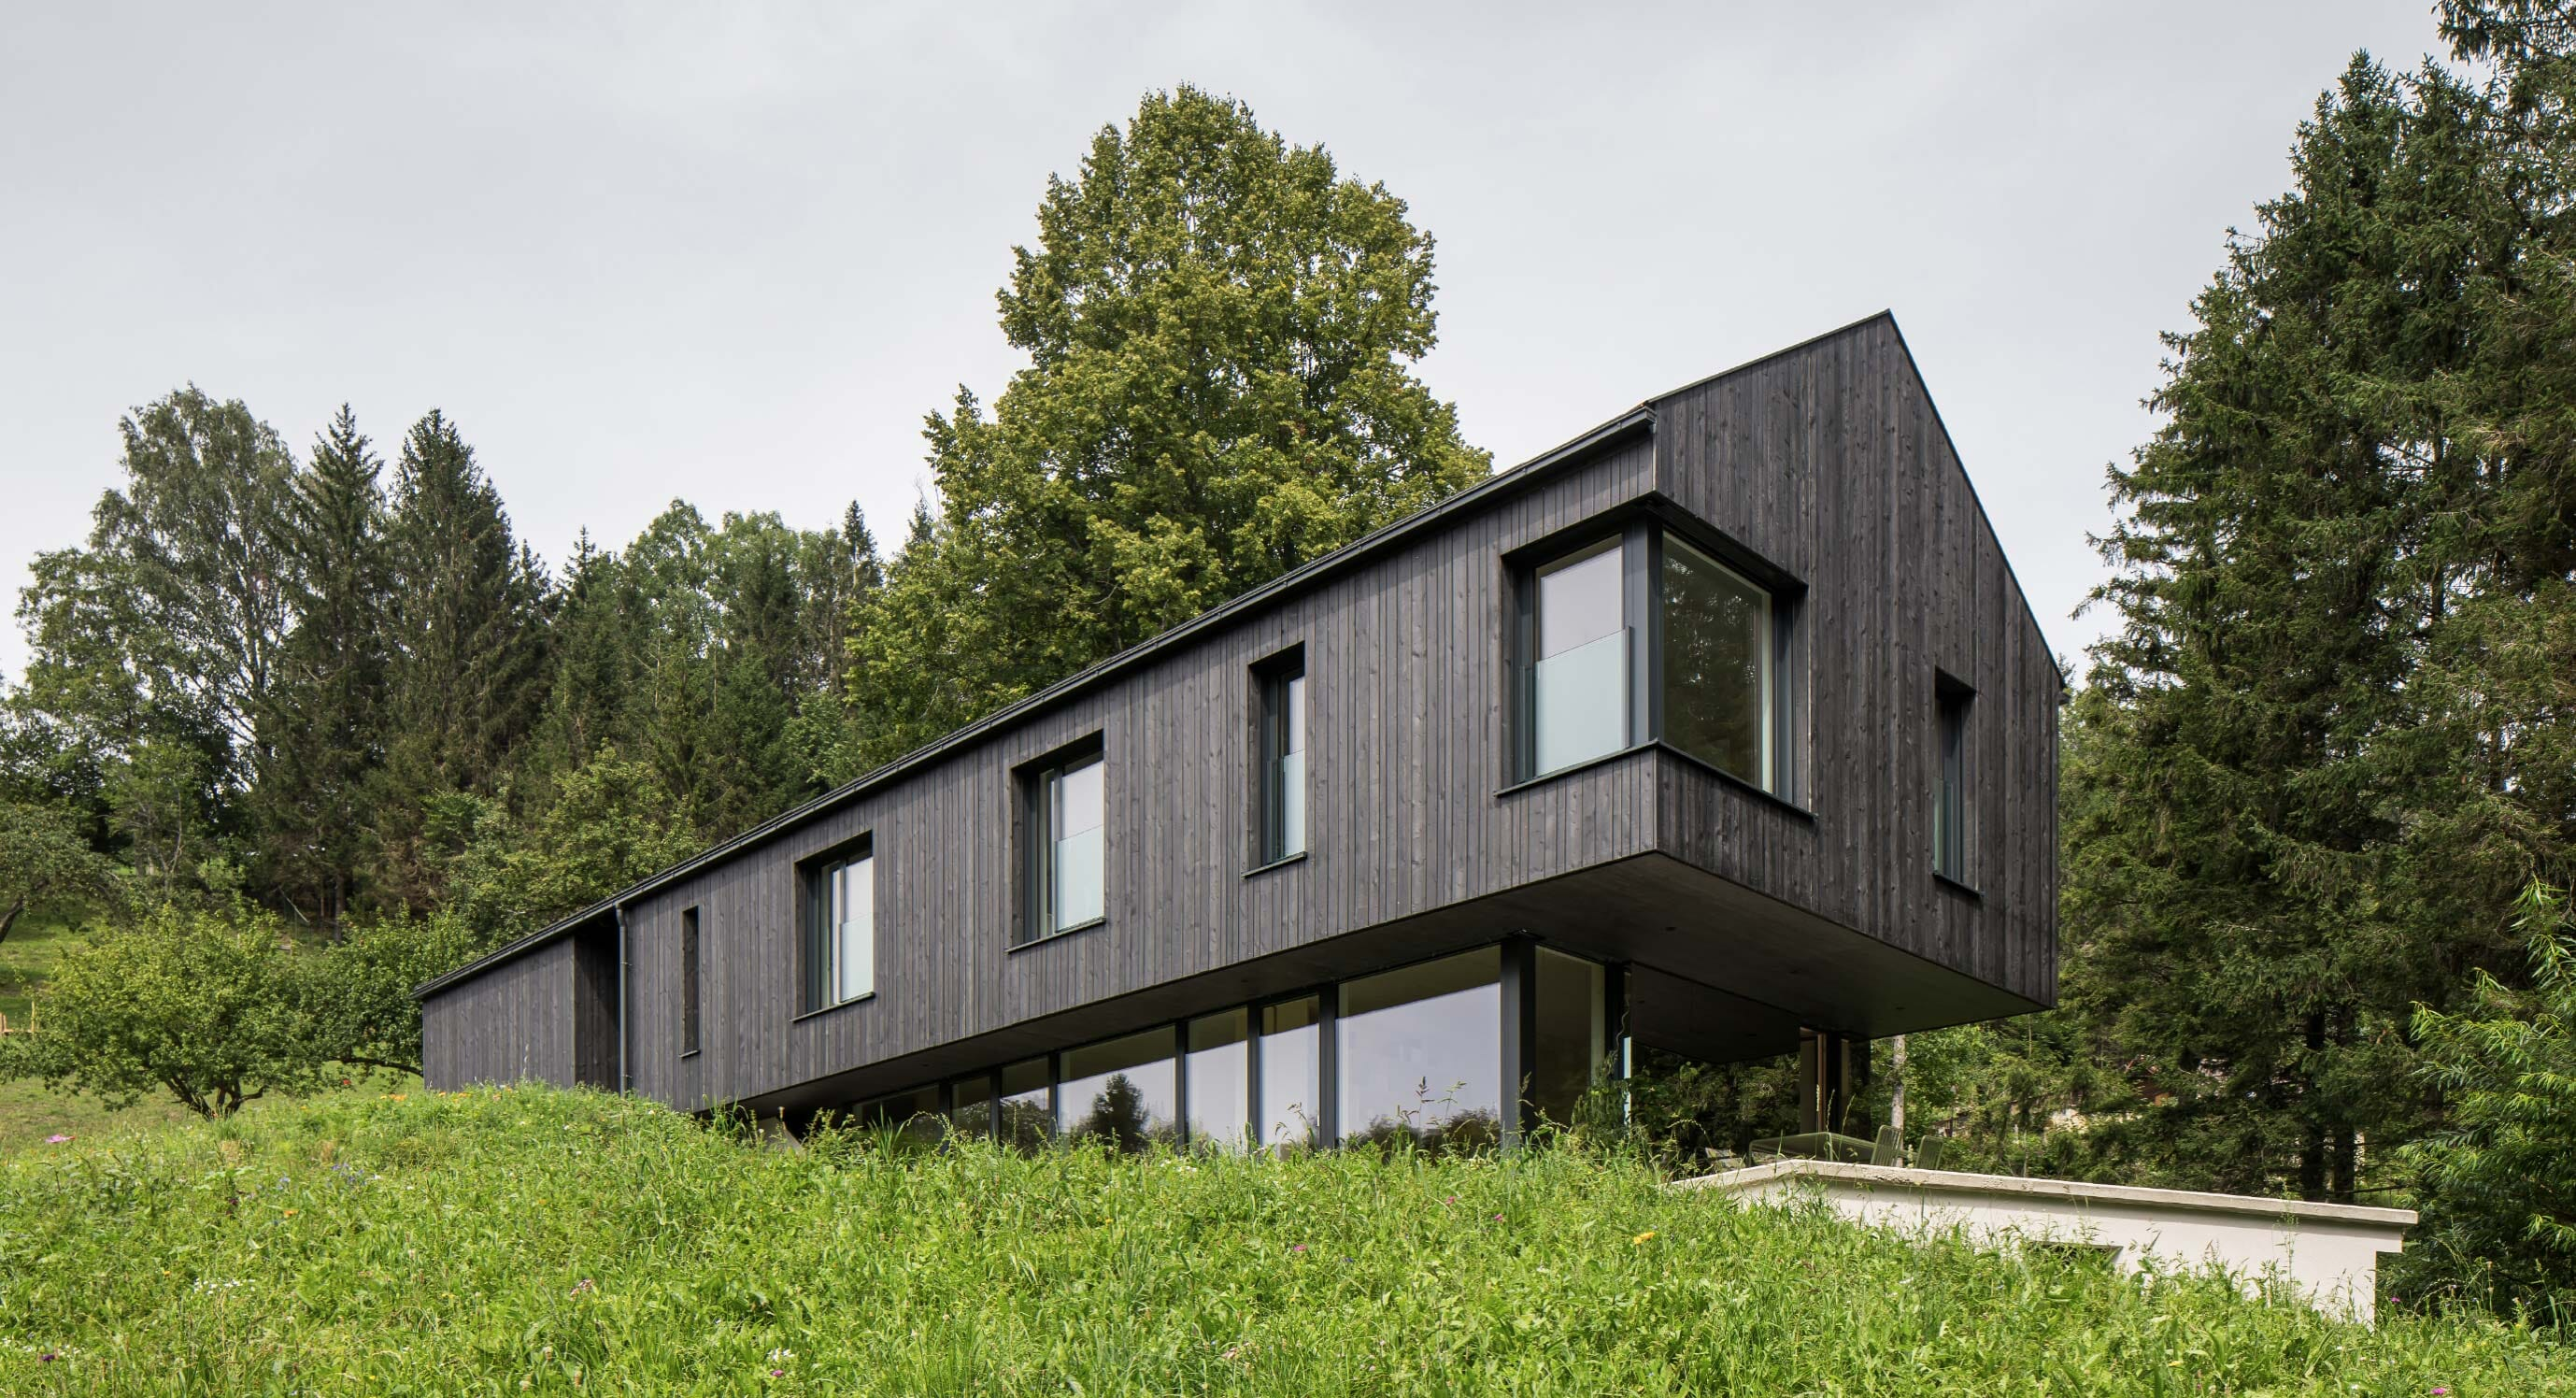 The Mountain House: Tradition and modernity